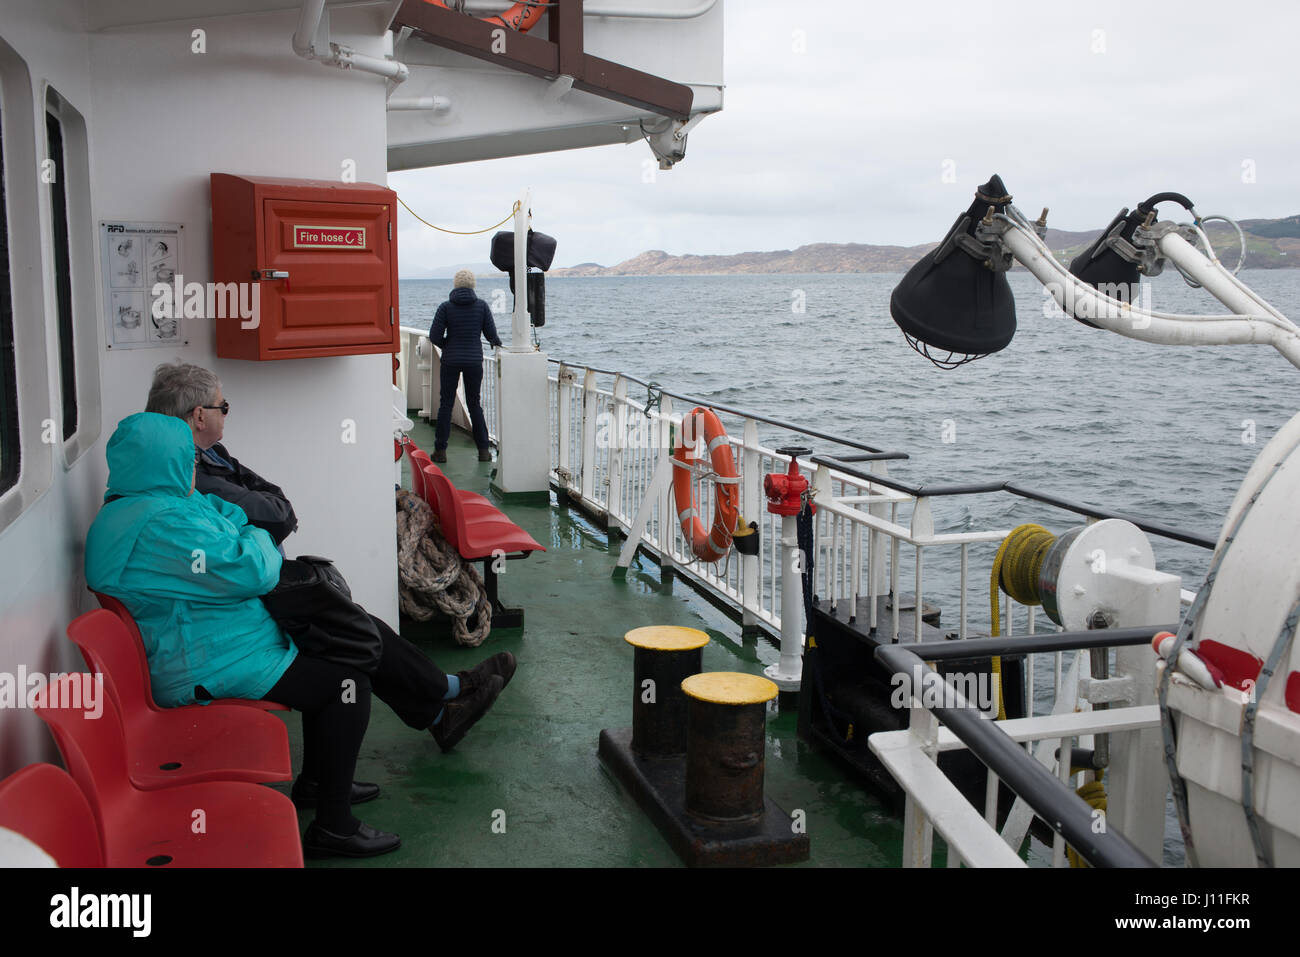 Passengers on board the Cal Mac Ferry Lochnevis bound for Canna Island, Inner Hebrides Scotland - Stock Image